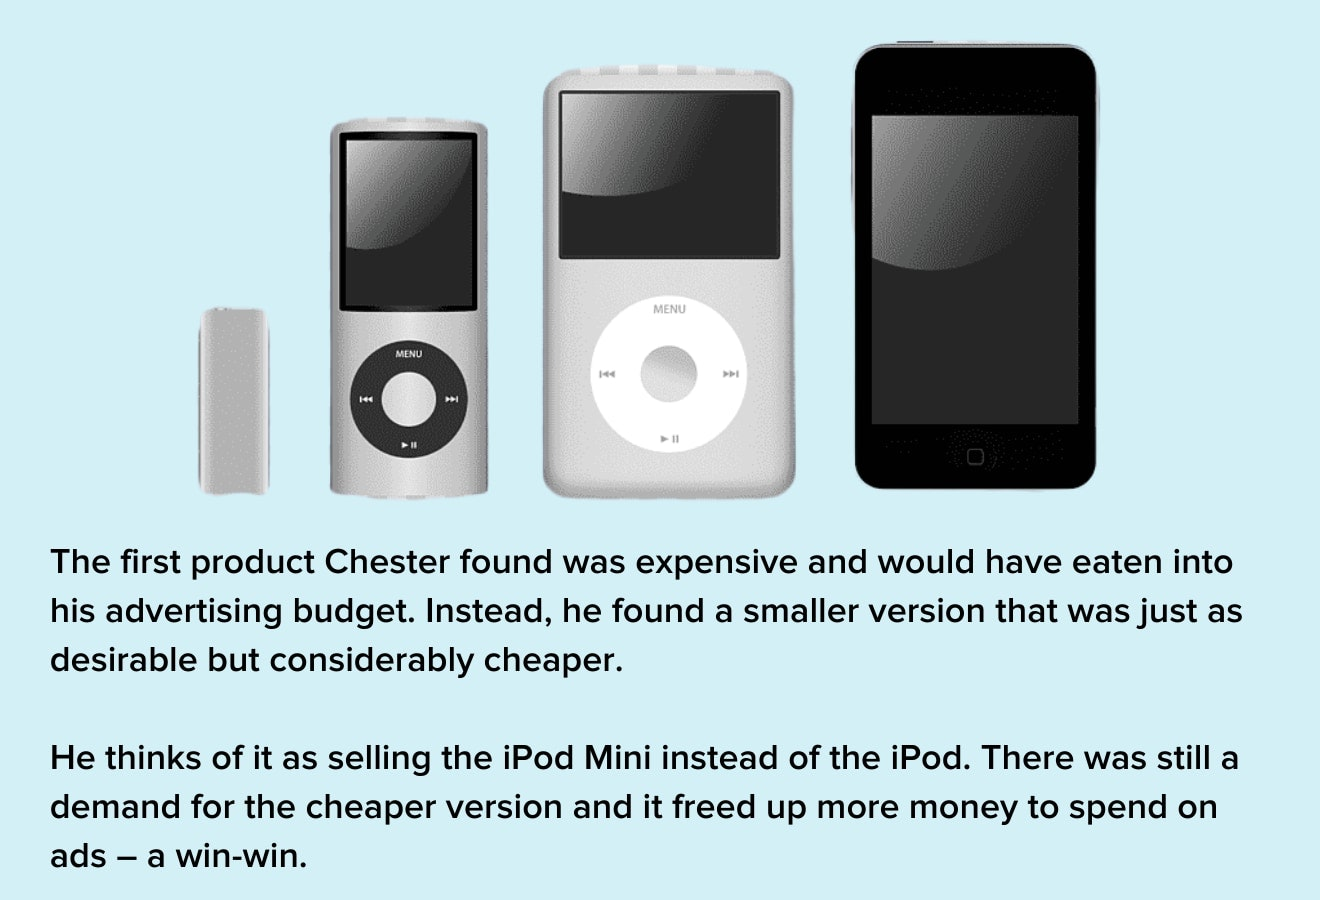 Chester explains his product as the 'iPod Mini' rather than the more premium 'iPod'